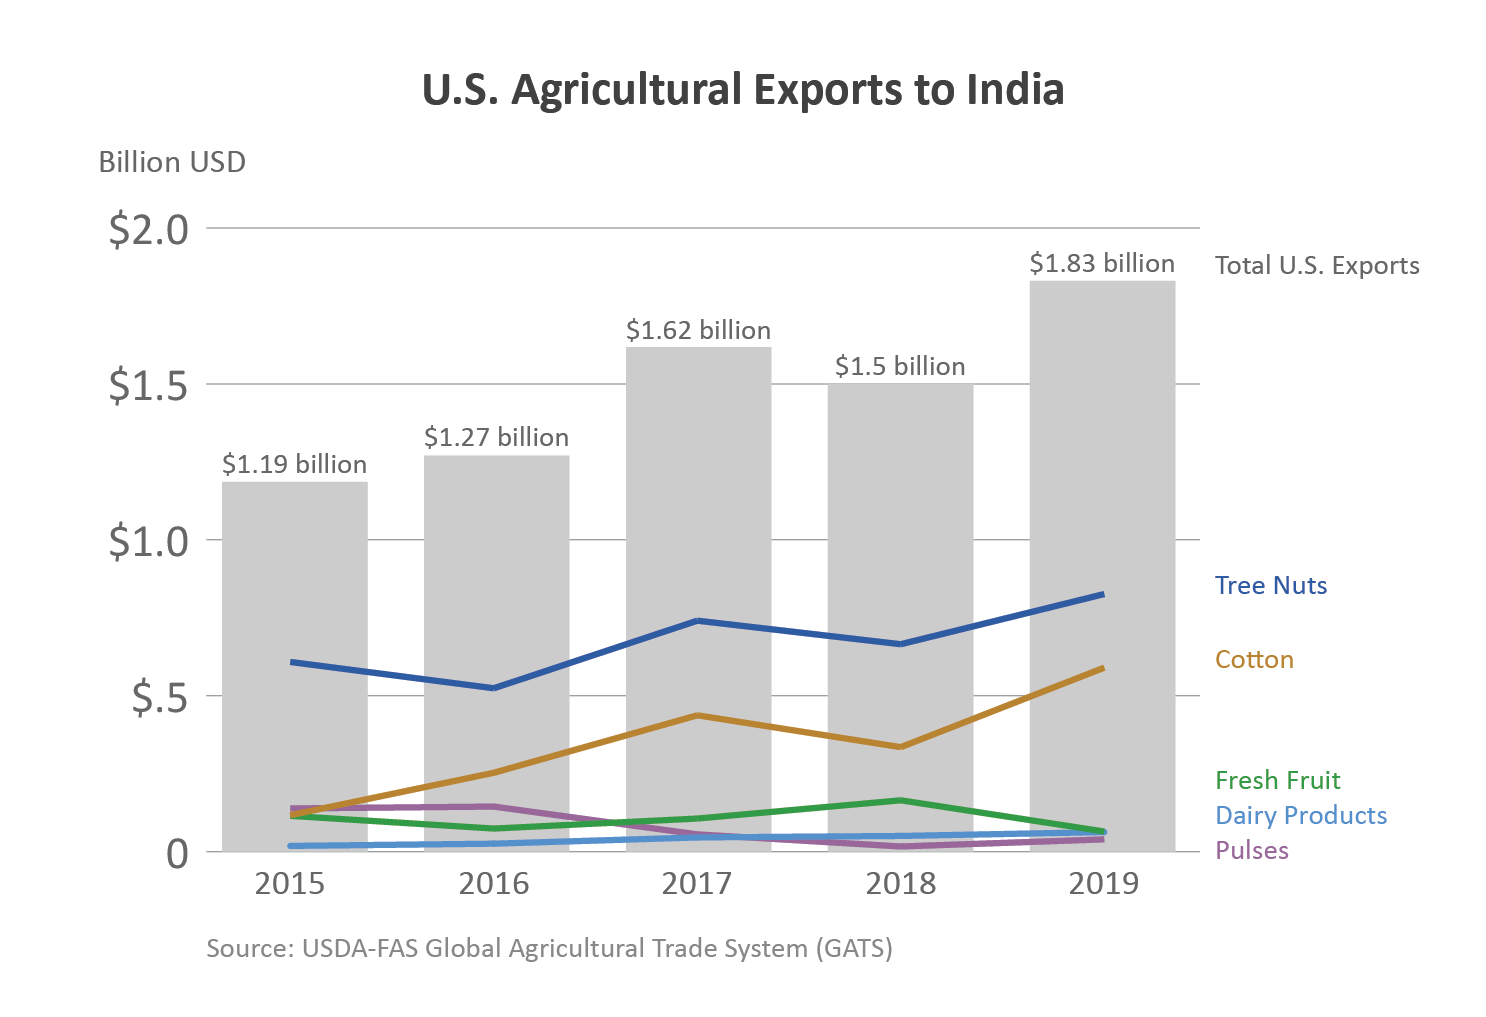 Chart showing U.S. agricultural exports to India.  In 2019, ag exports totaled $1.83 billion.